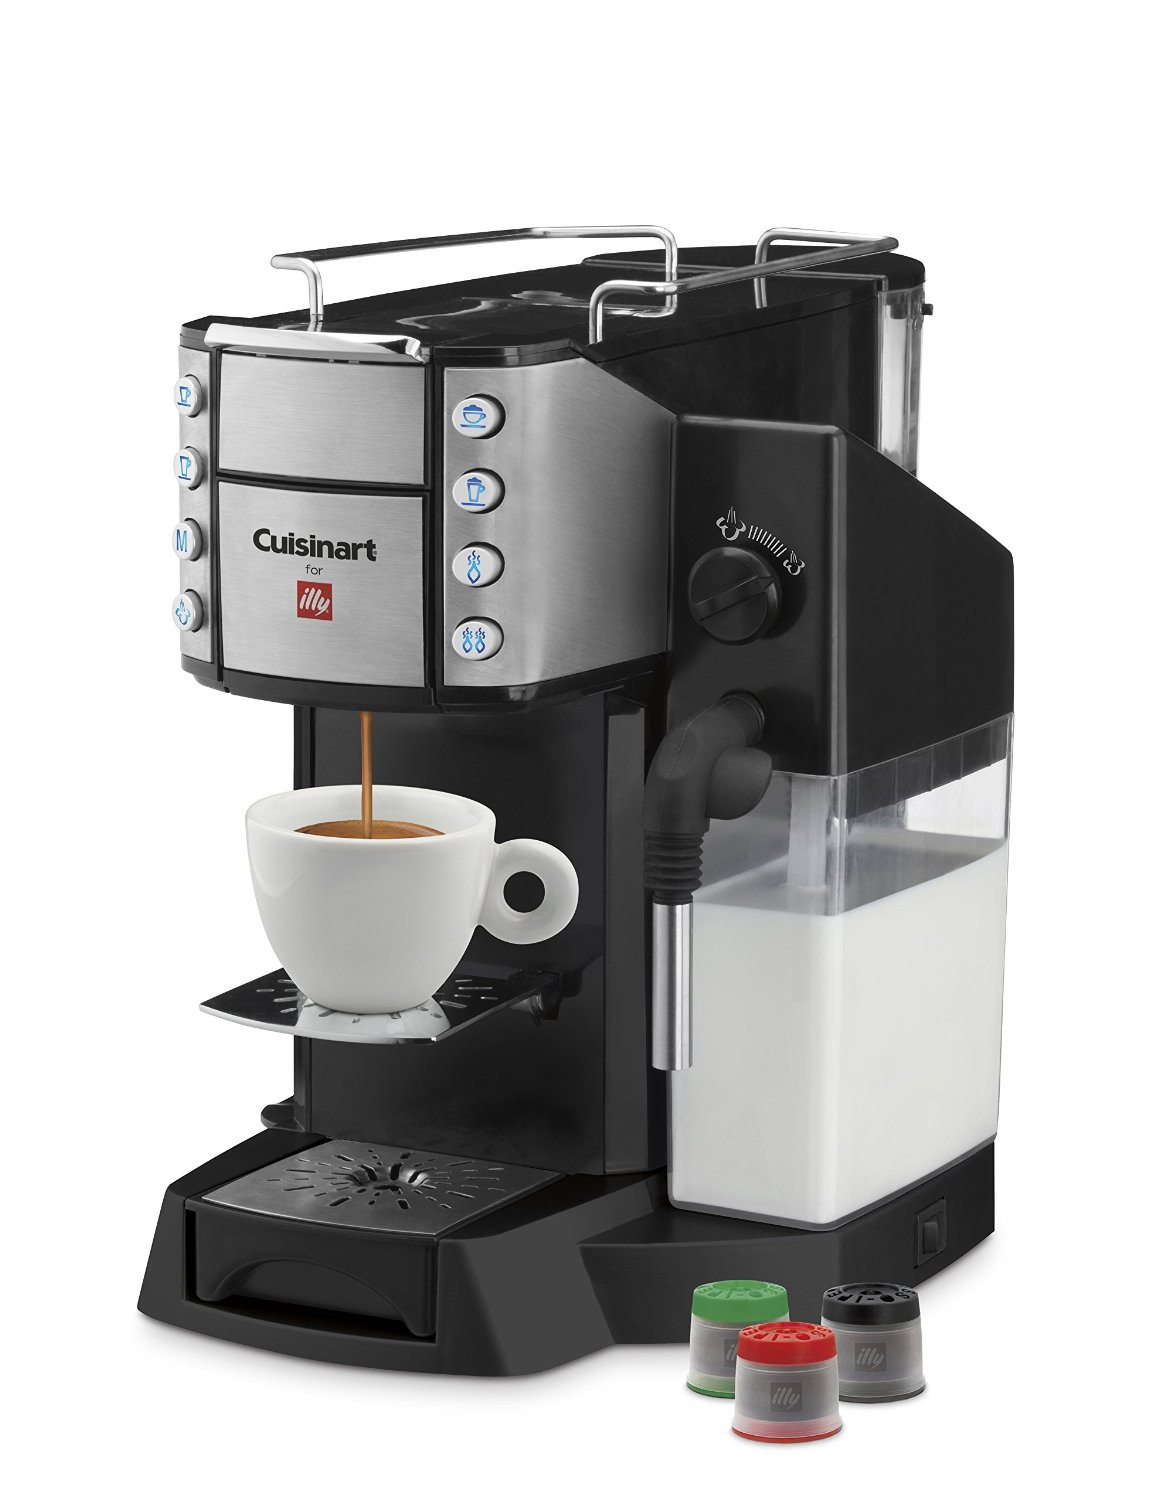 Coffee cappuccino maker